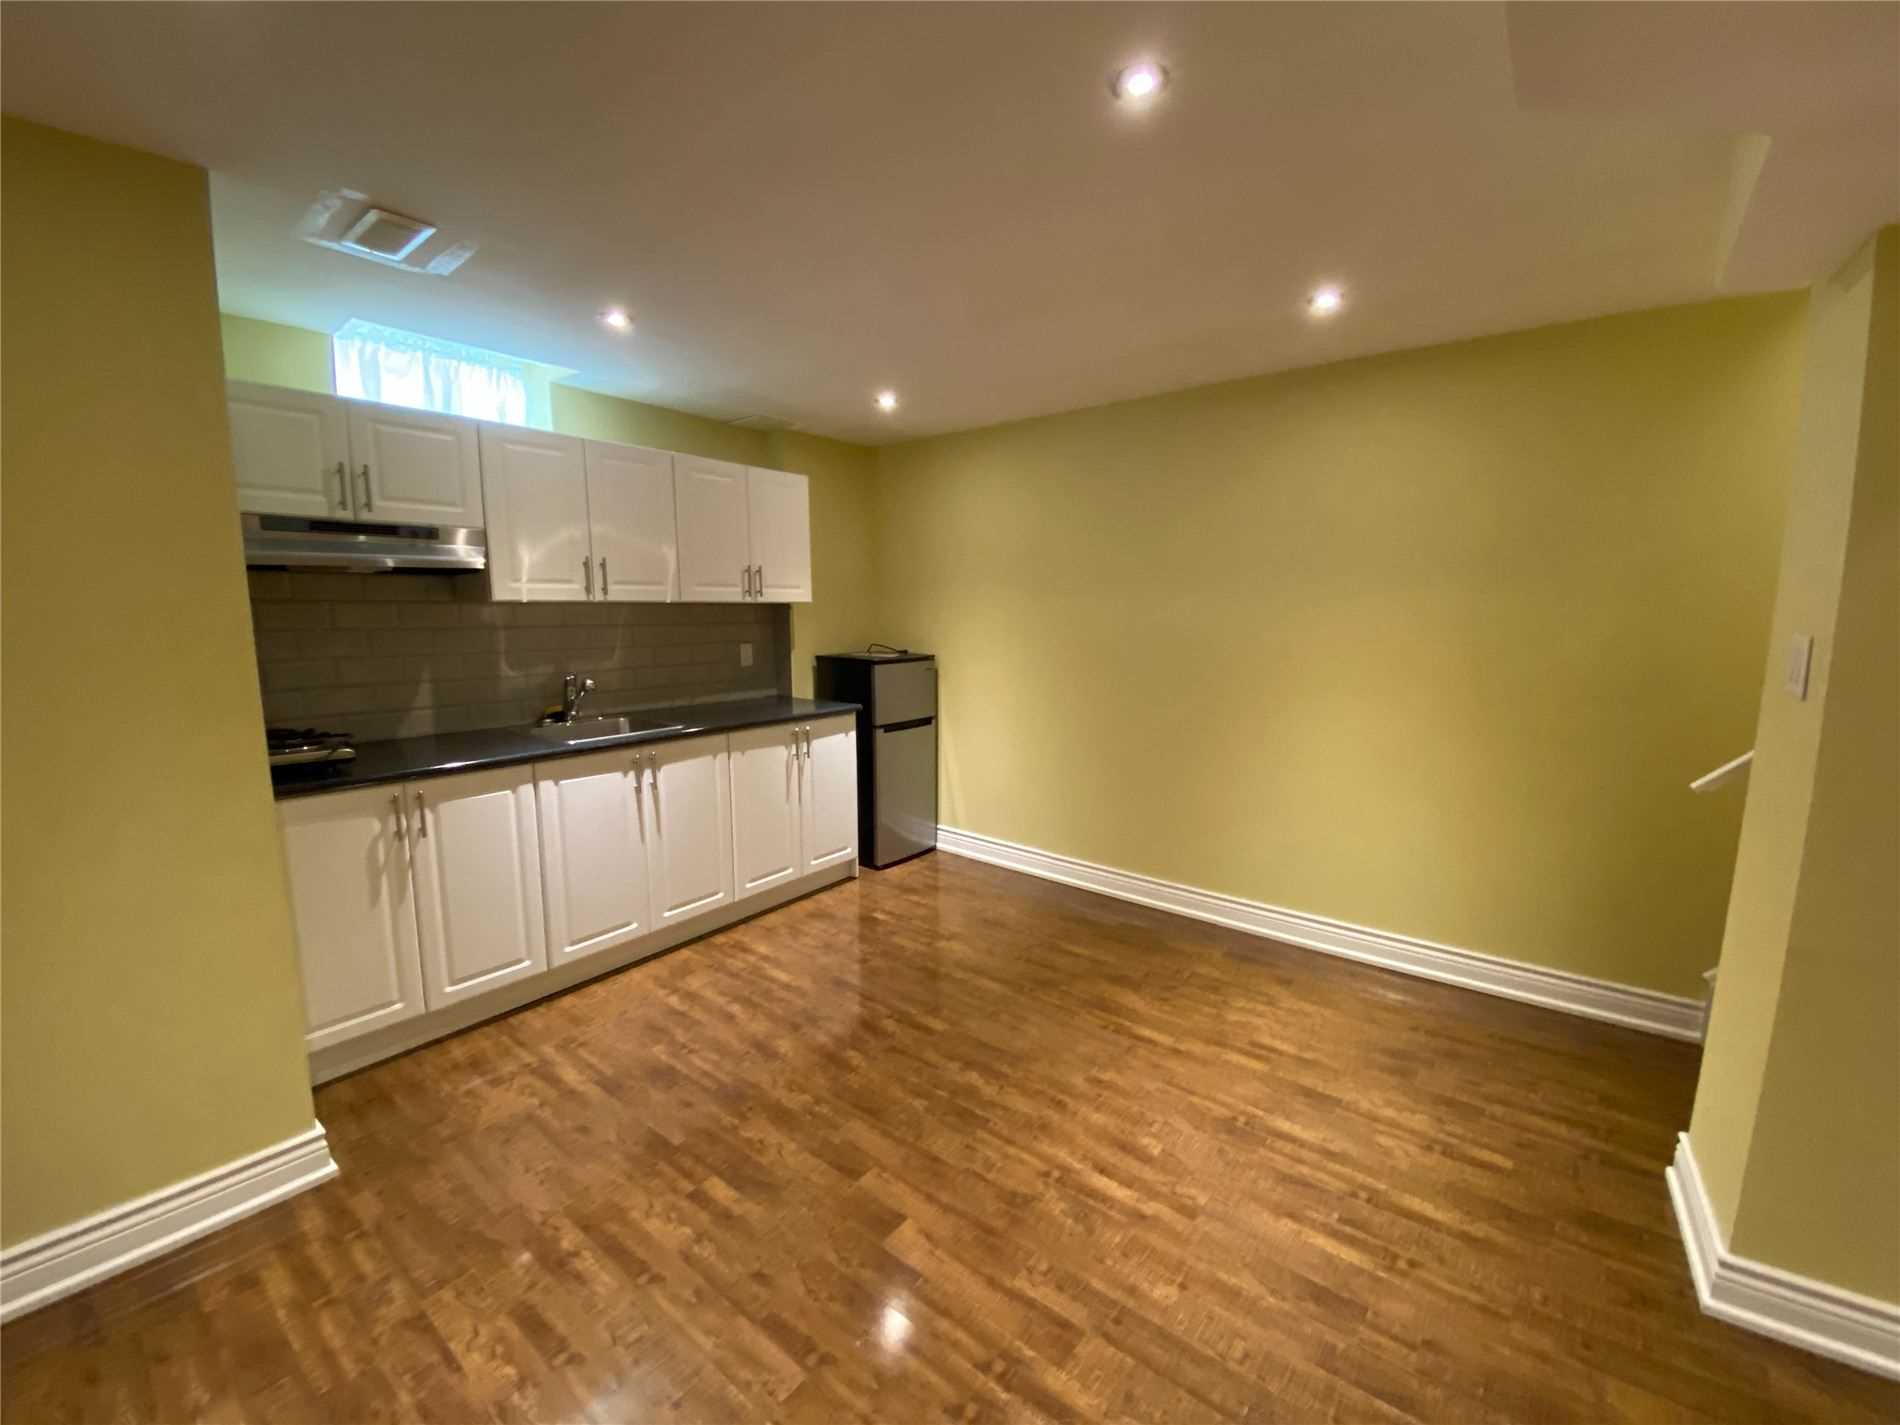 Image 3 of 8 showing inside of 0 Bedroom Semi-Detached Apartment for Lease at 2 Maroon Dr, Richmond Hill L4E5B4